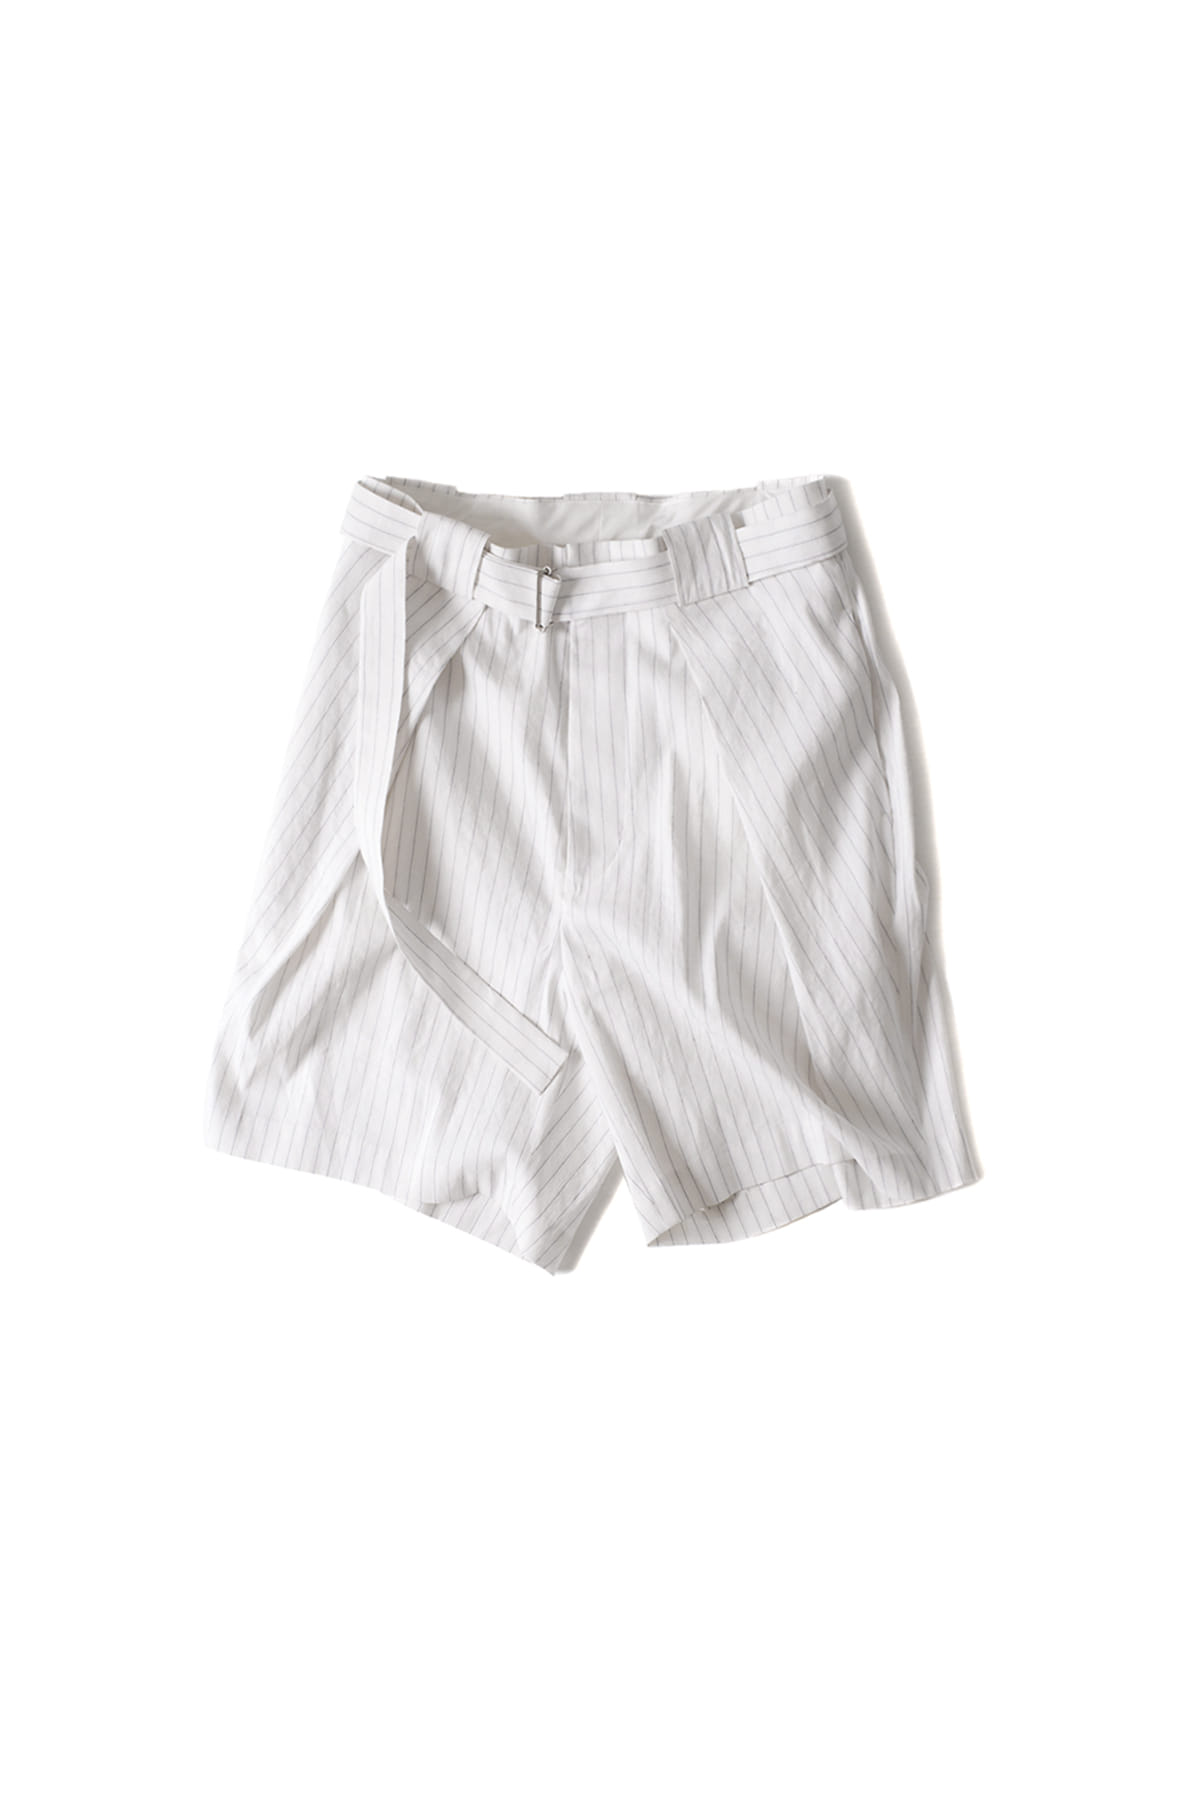 soe : Striped Belted Short Pants (White)